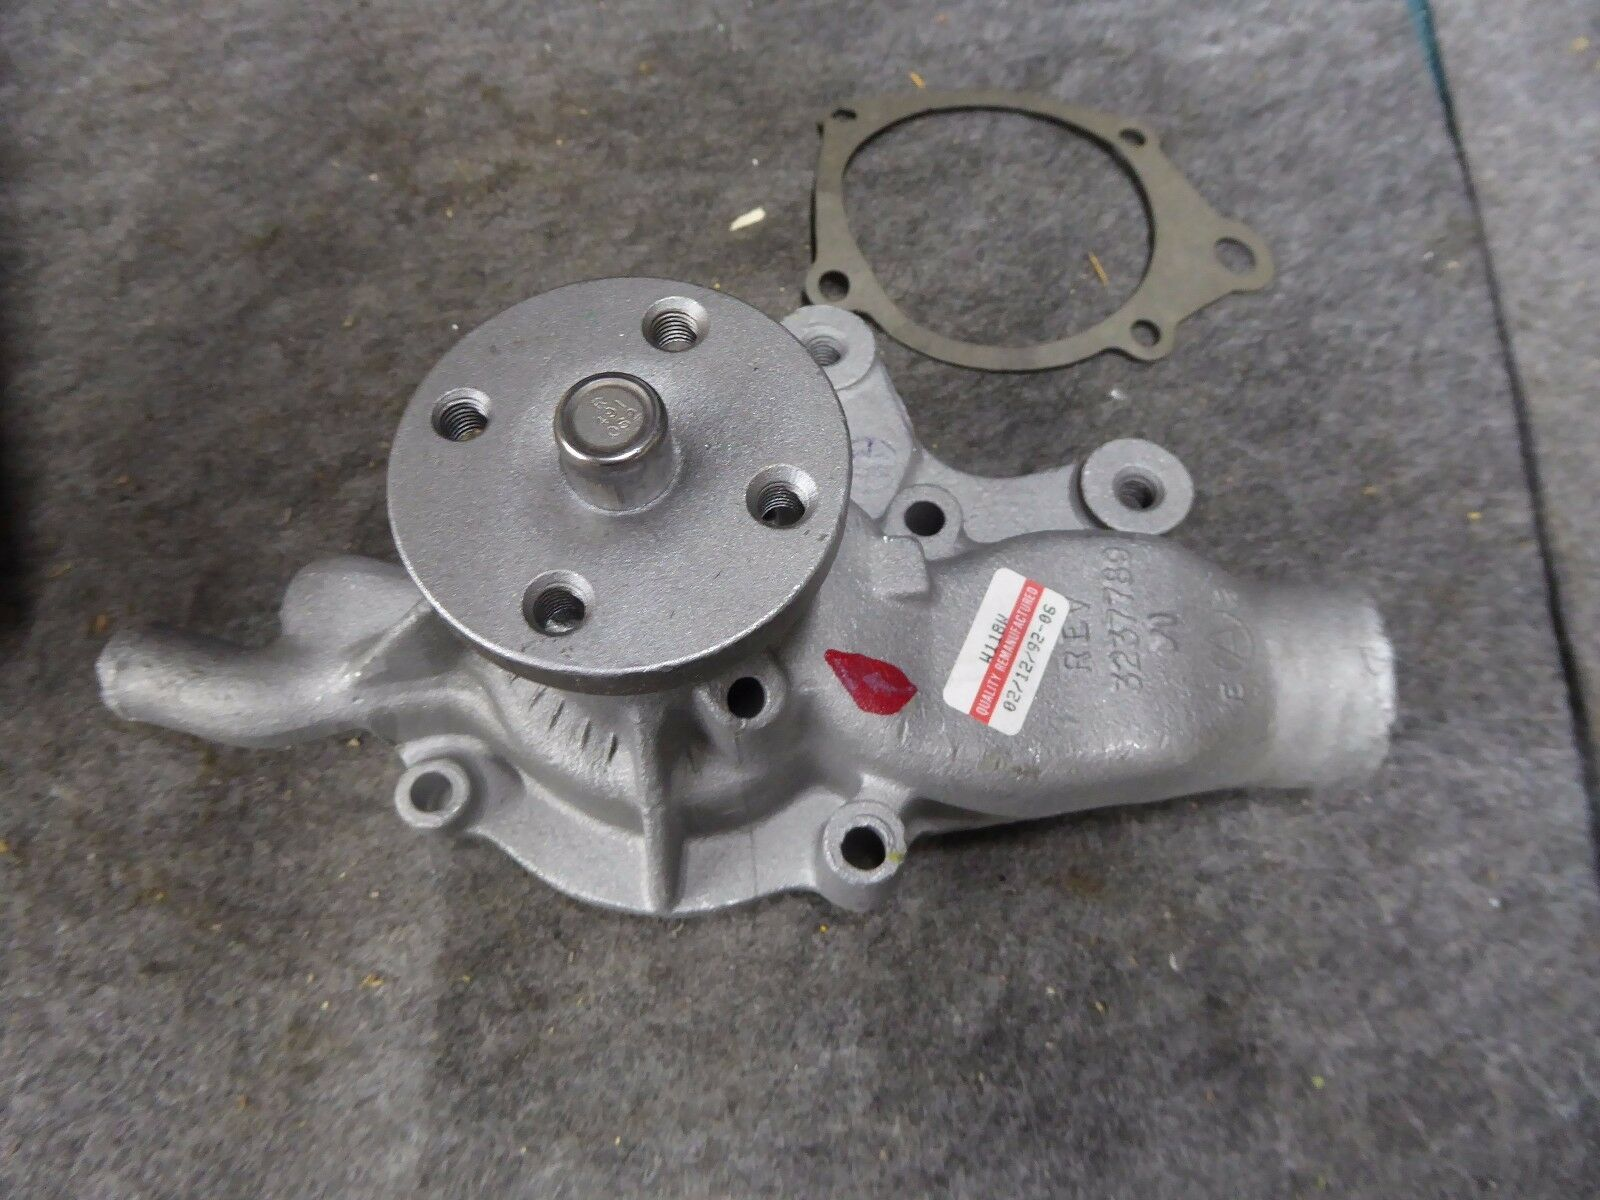 AMC Water Pump Remanufactured By Arrow 7-1330, 8134321